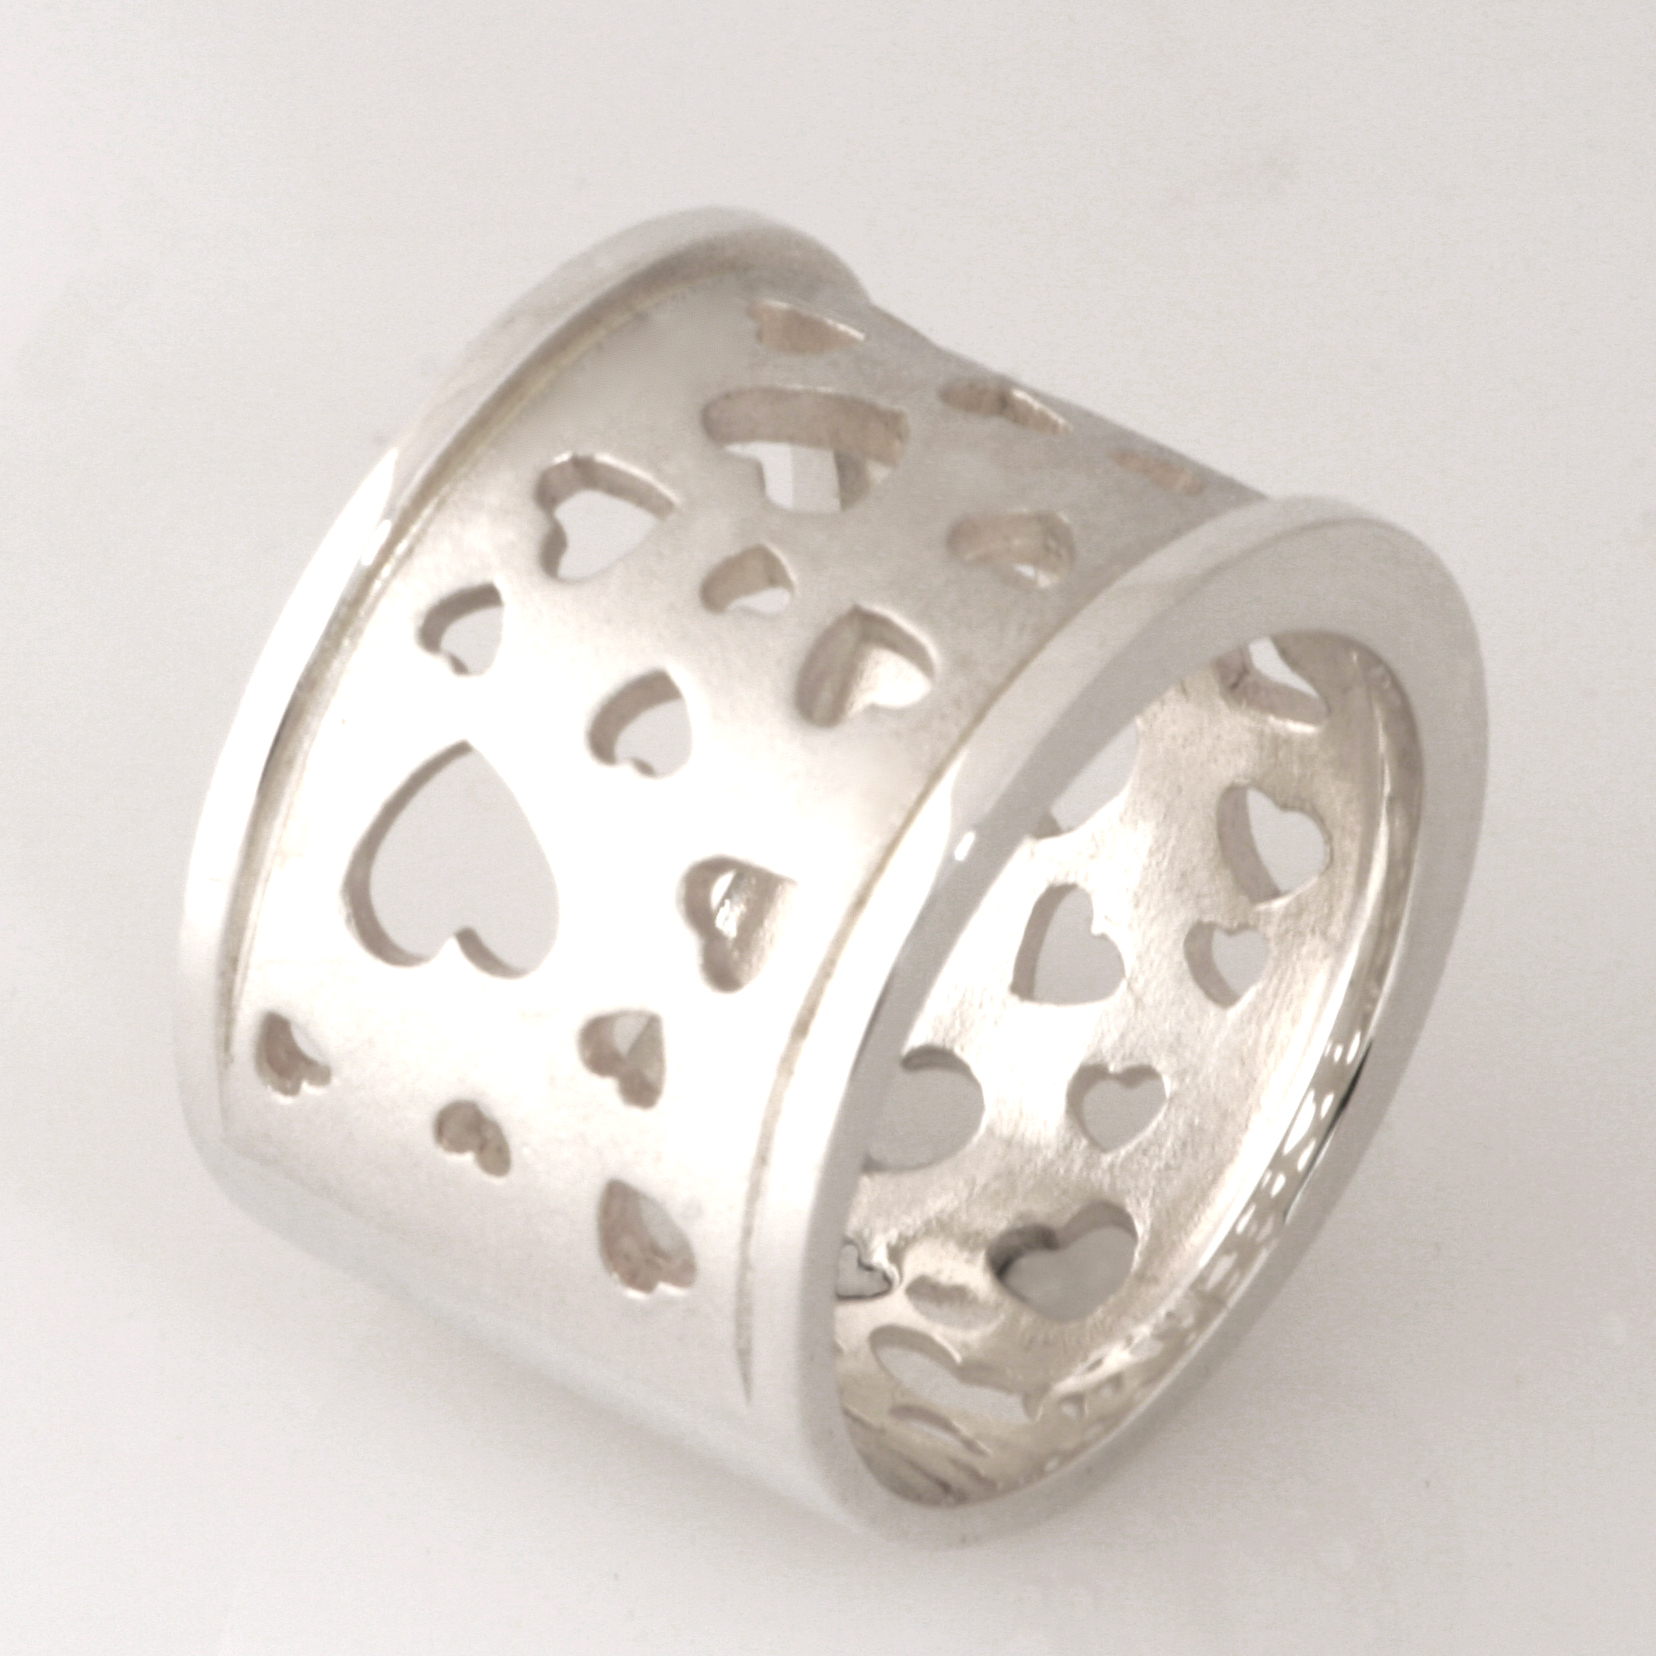 R107 Sterling silver thick band with heart shape cut outs. $135